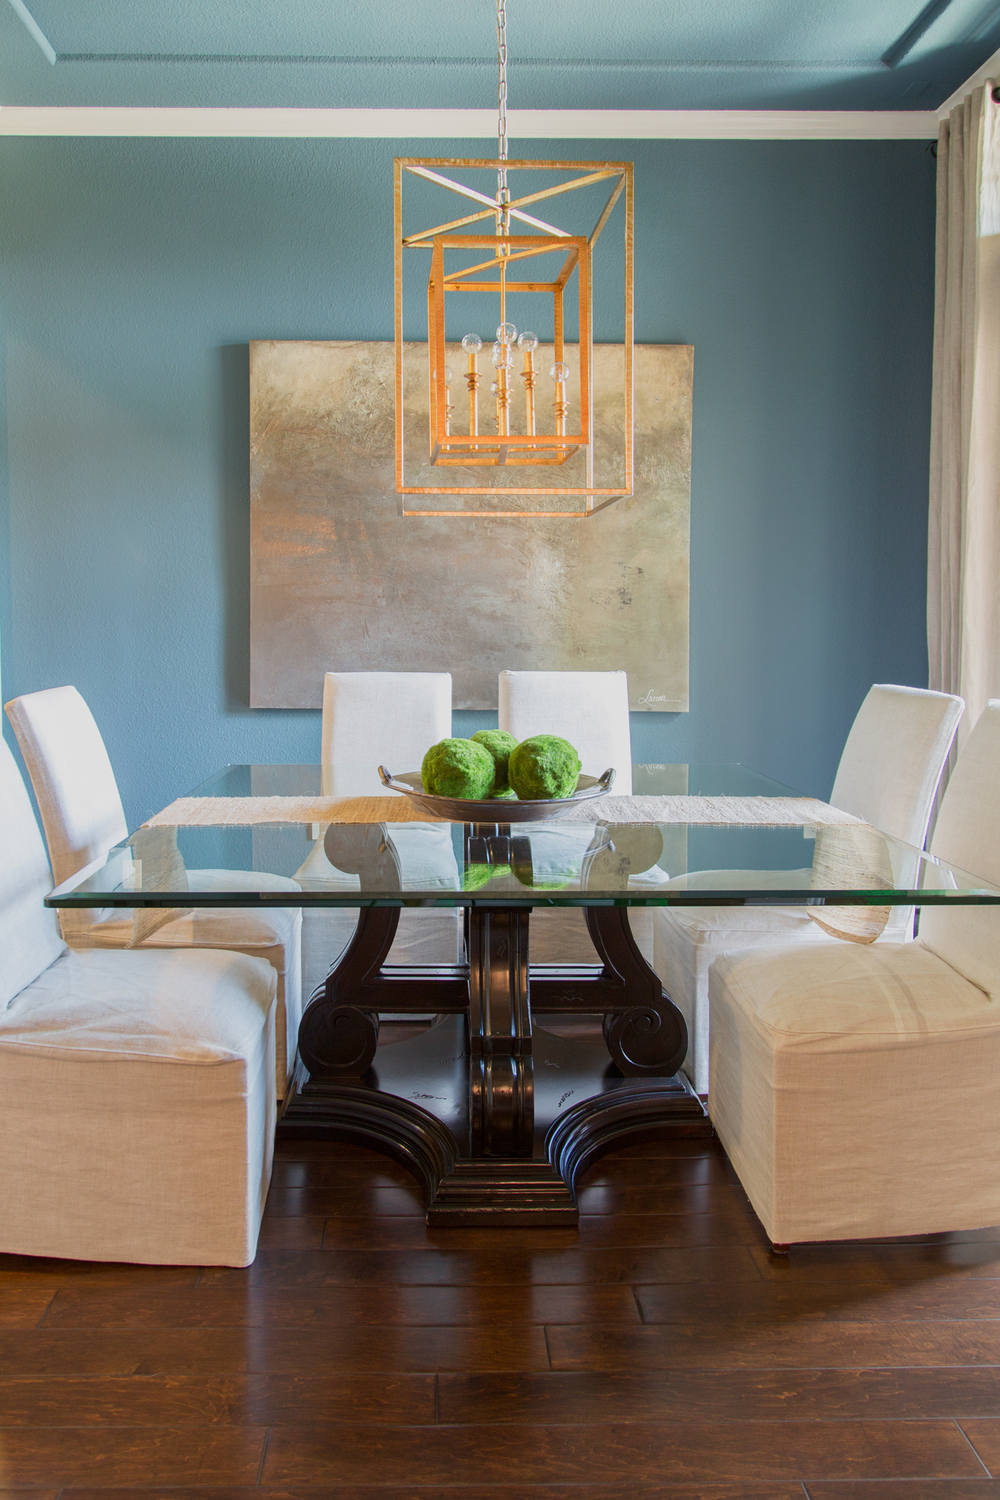 Dining room remodel; table; art; gilded lantern; decor | Interior Designer: Carla Aston / Photographer: Tori Aston